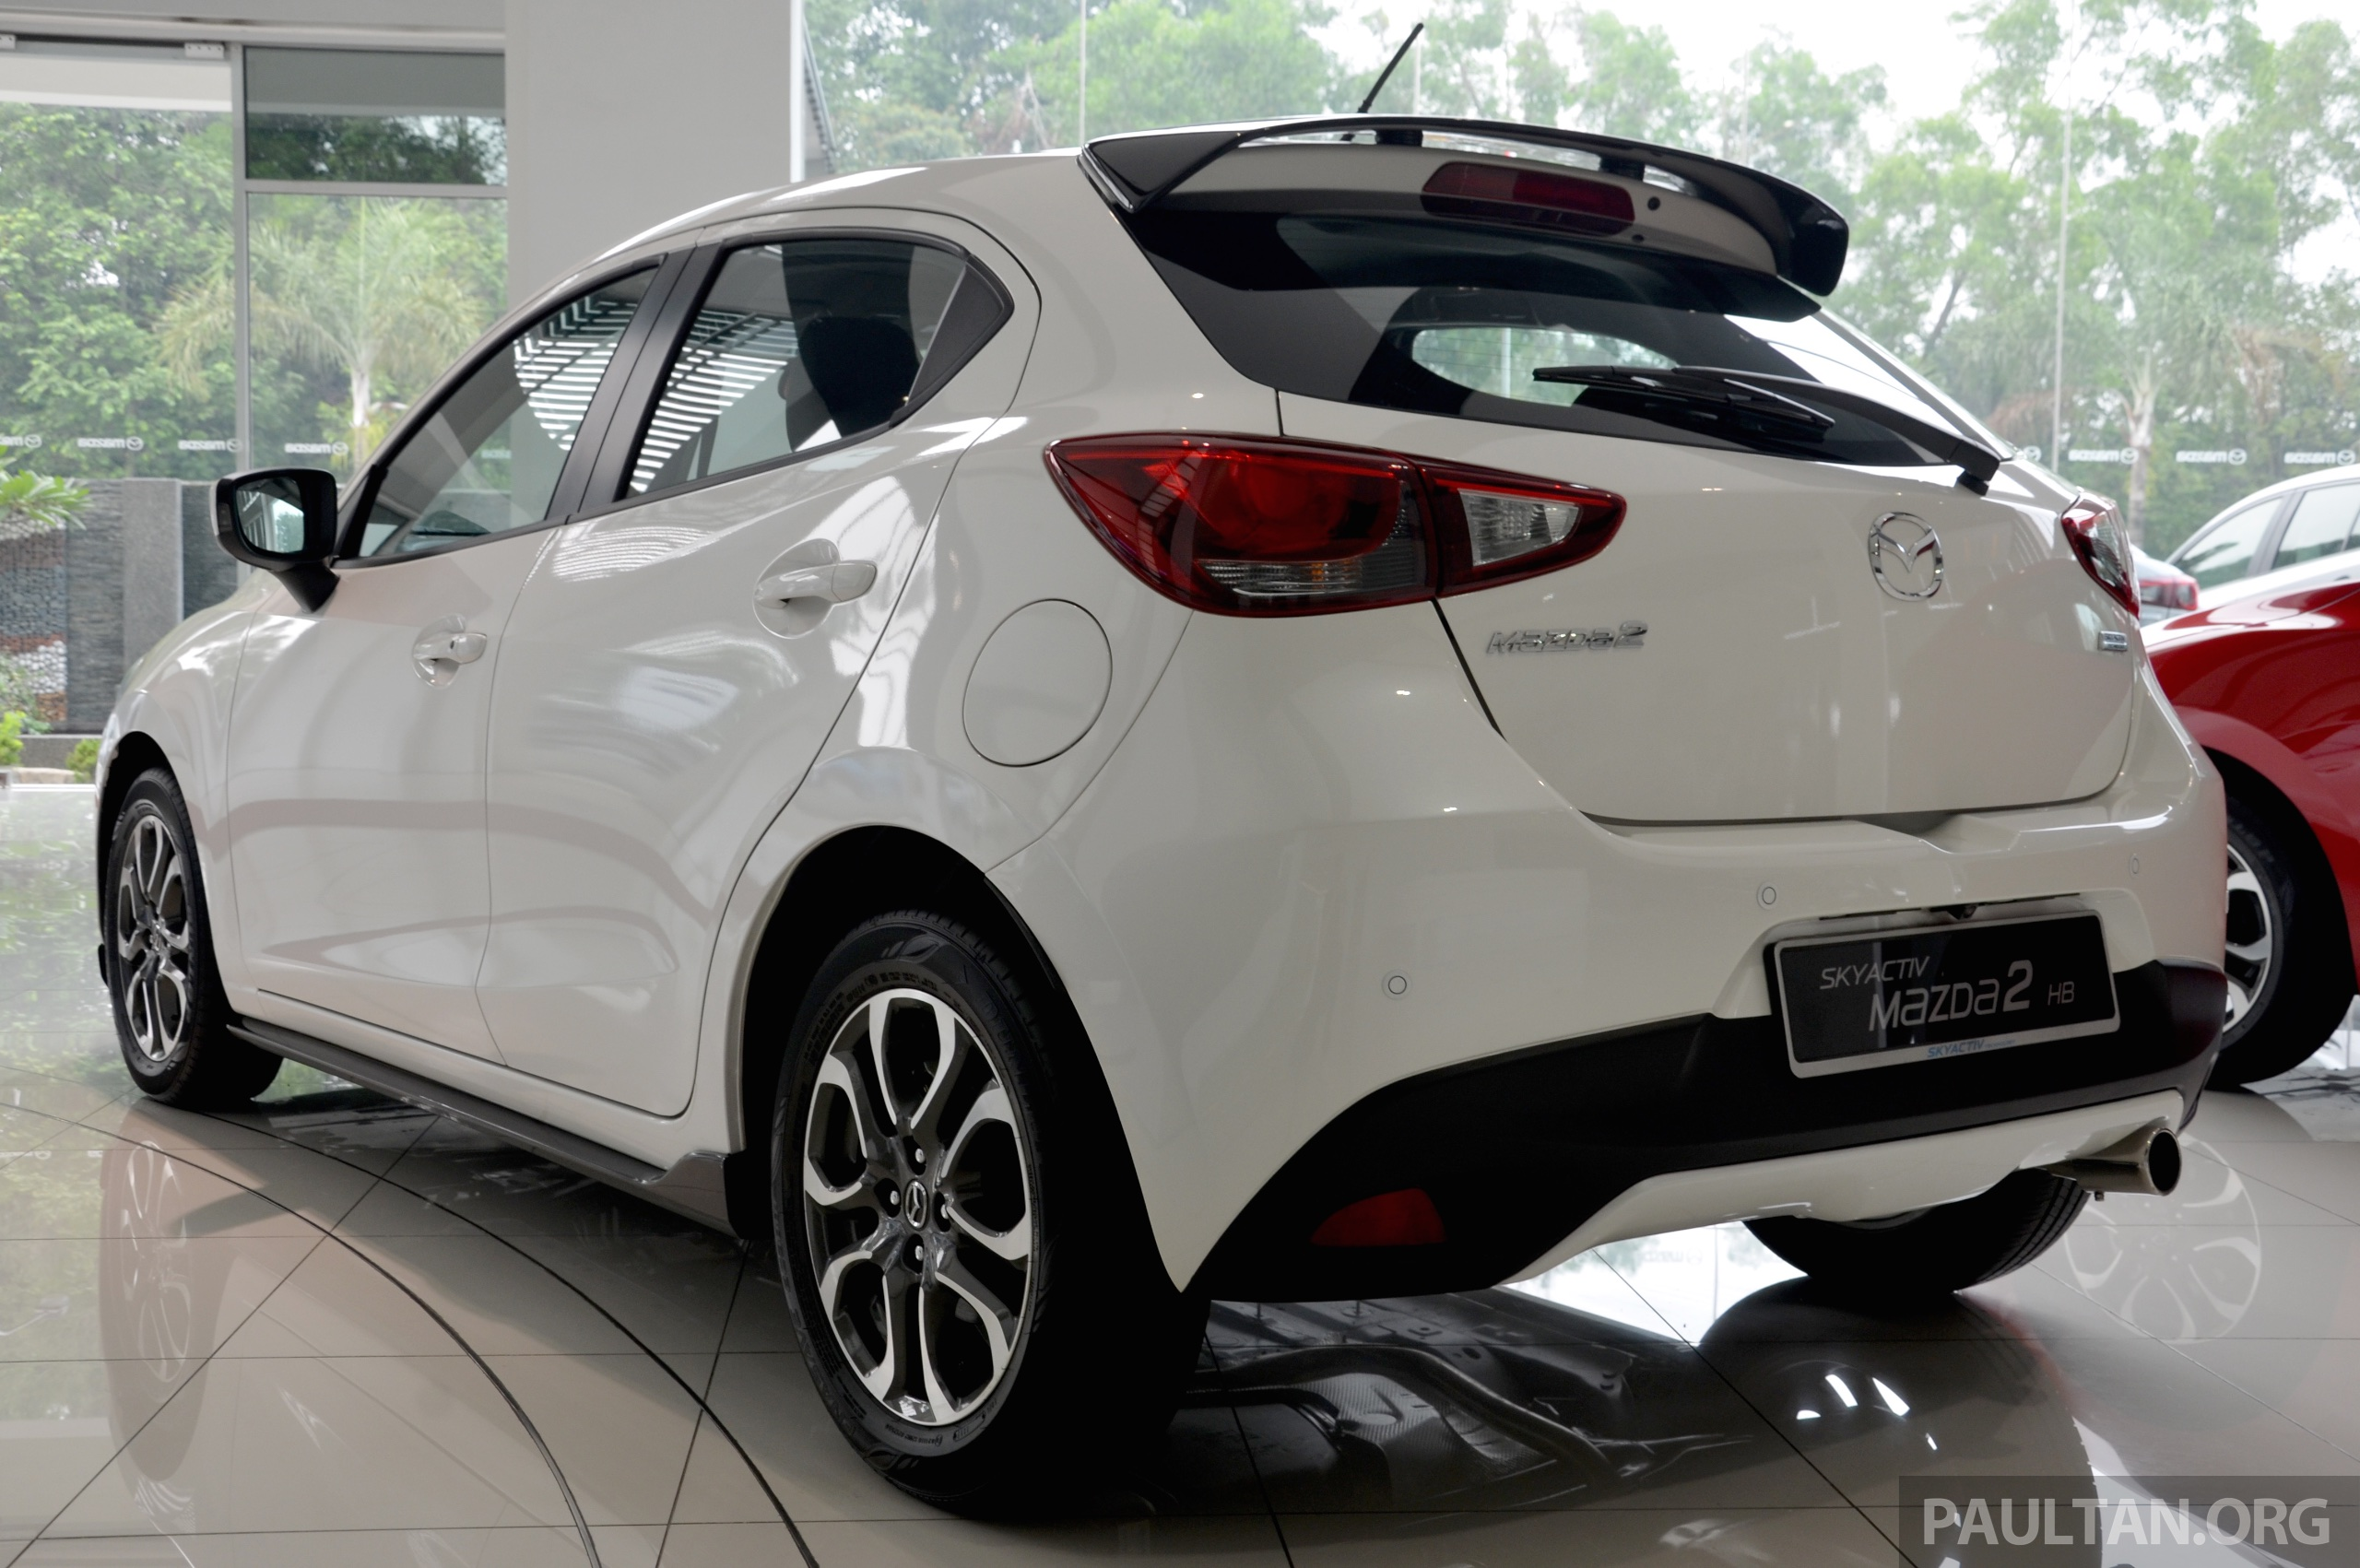 gallery 2015 mazda 2 1 5 hatch with sports kit paul tan image 395237. Black Bedroom Furniture Sets. Home Design Ideas